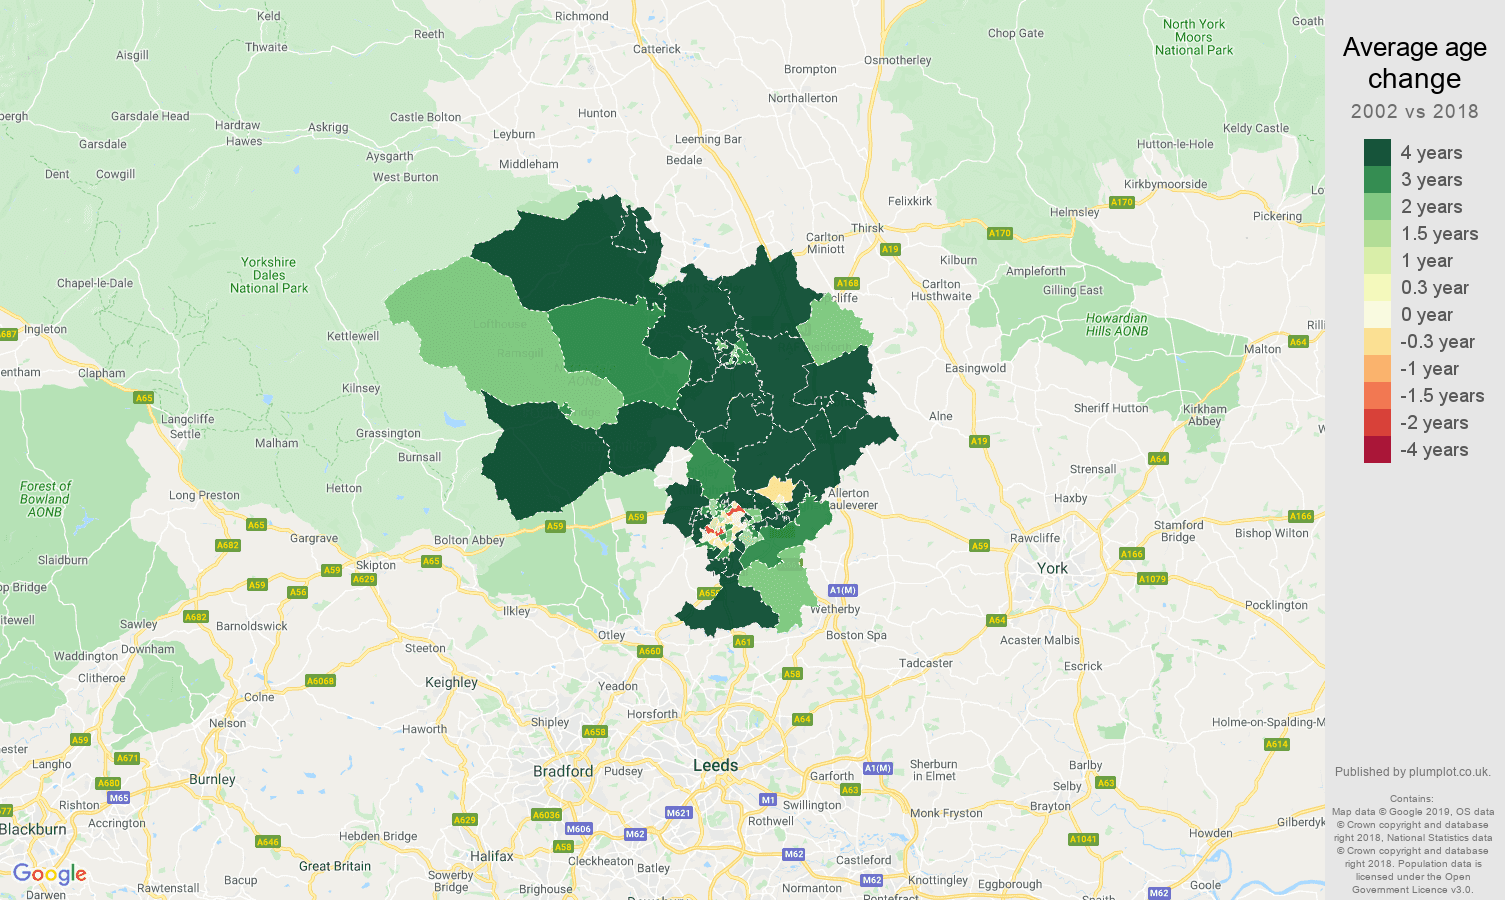 Harrogate average age change map